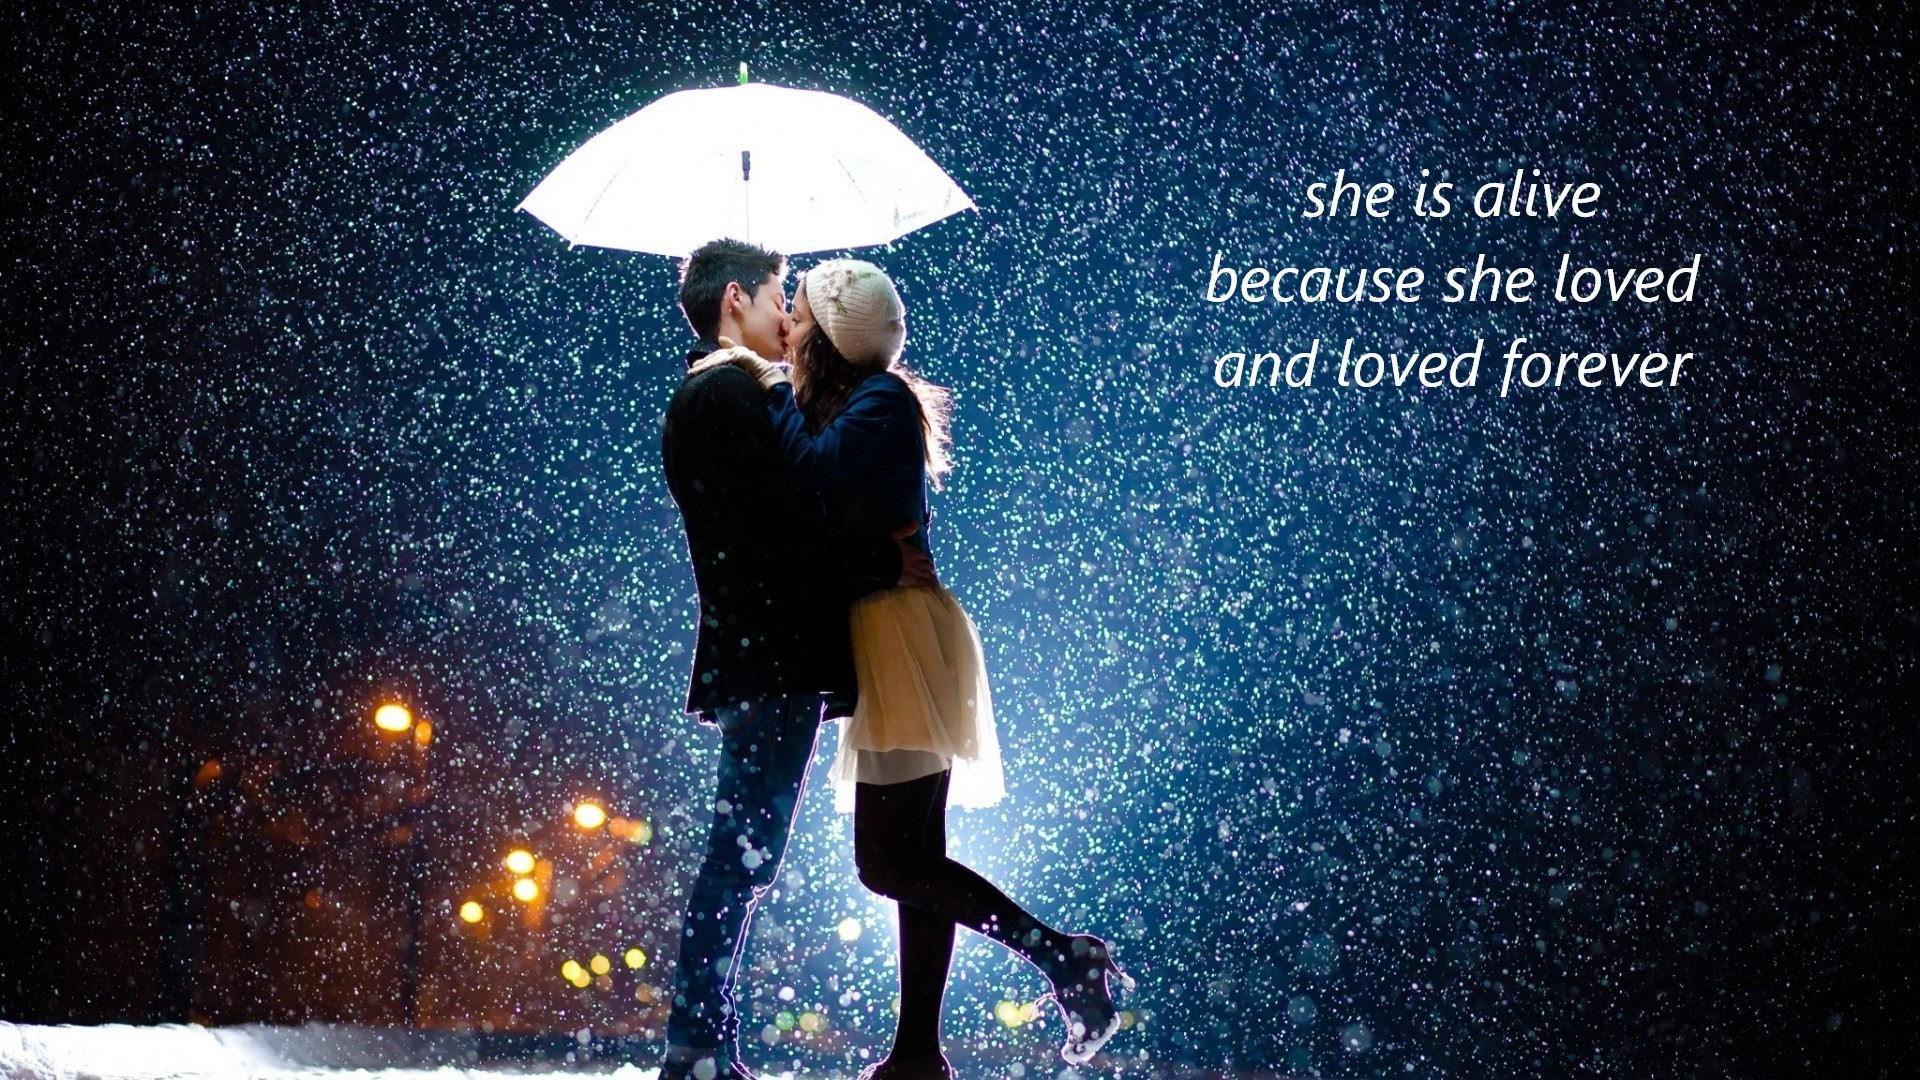 images of love couples in rain with quotes